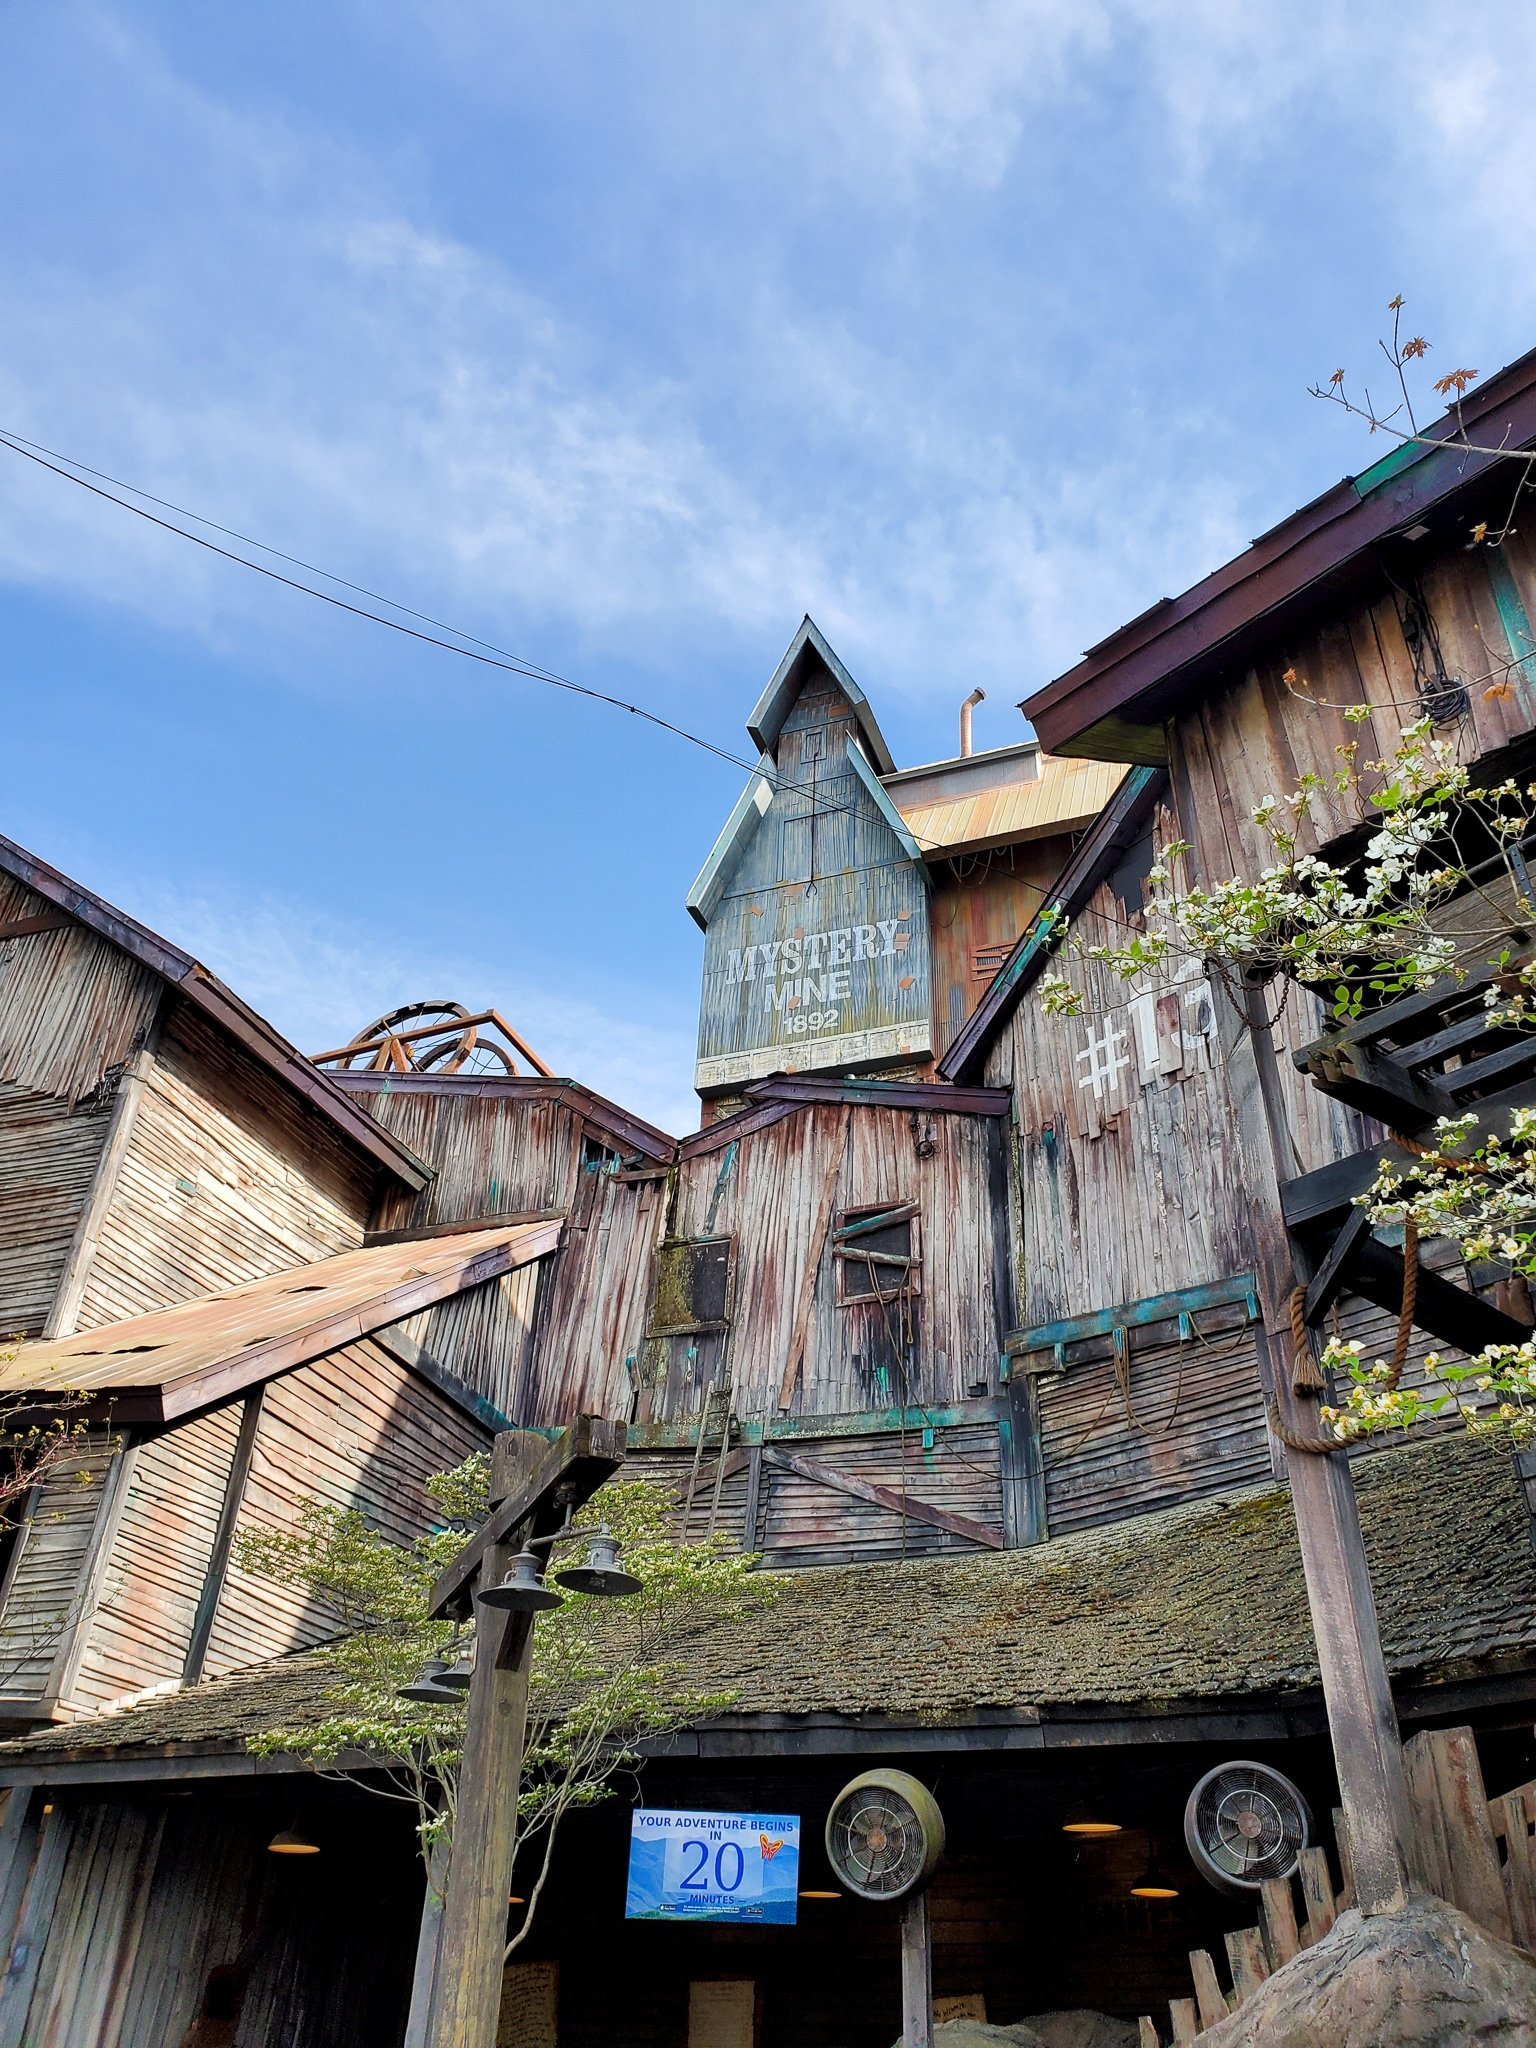 Dollywood Mystery Mine. My family spent the day playing and eating at the Dollywood theme park, and we are happy to report we had a blast! Read all about our trip and learn why Dollwood is a must visit destination while you are in Pigeon Forge, TN.